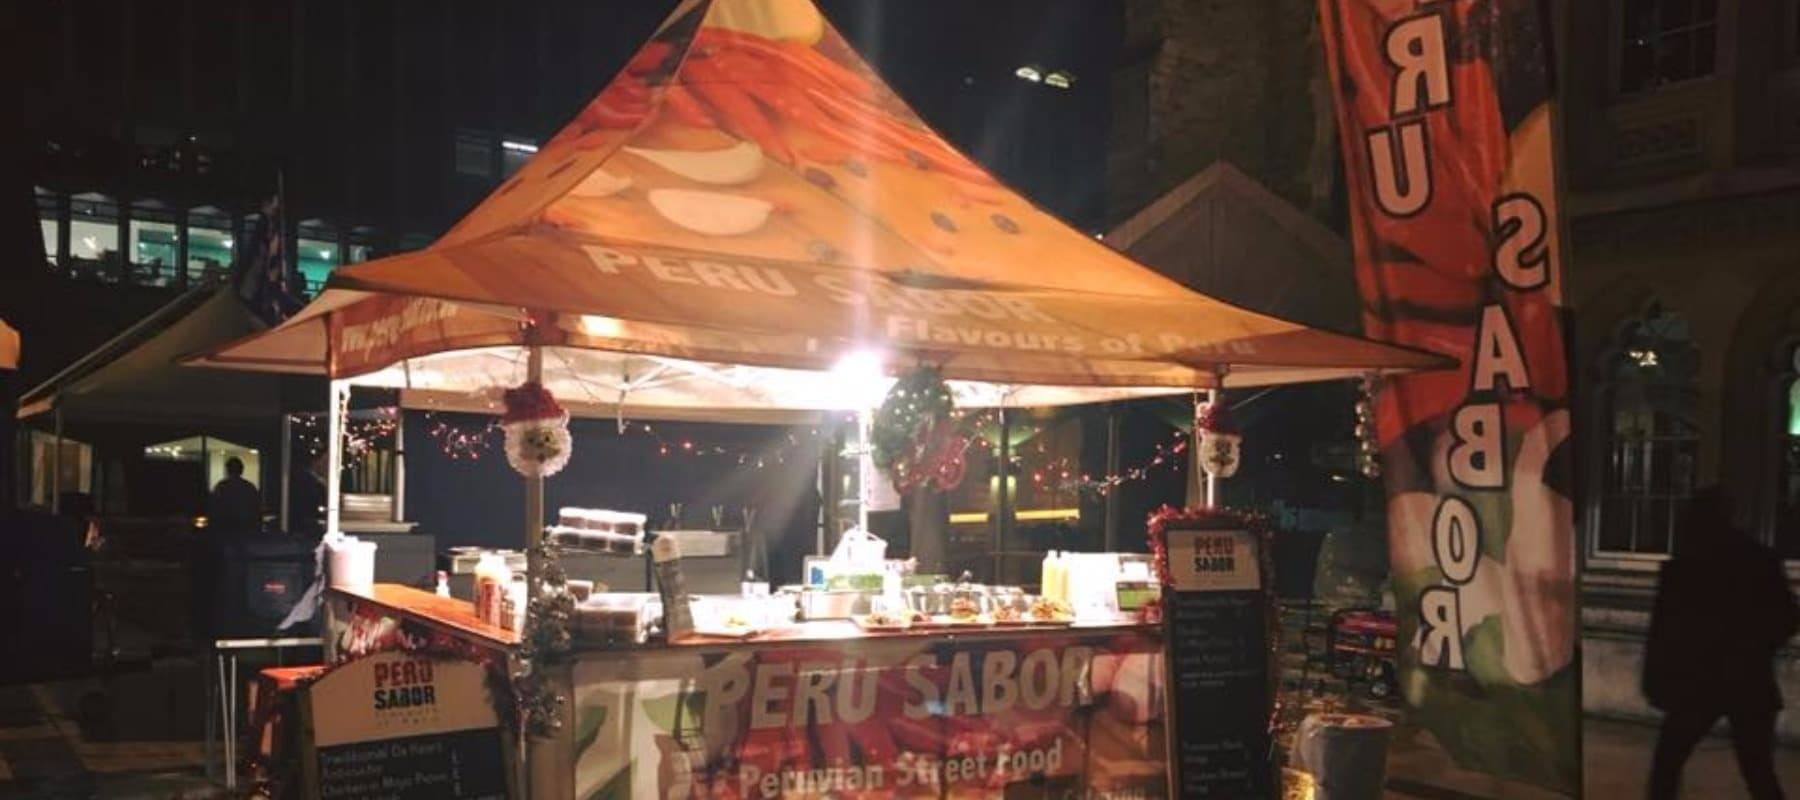 A Day In The Life Of A Street Food Vendor